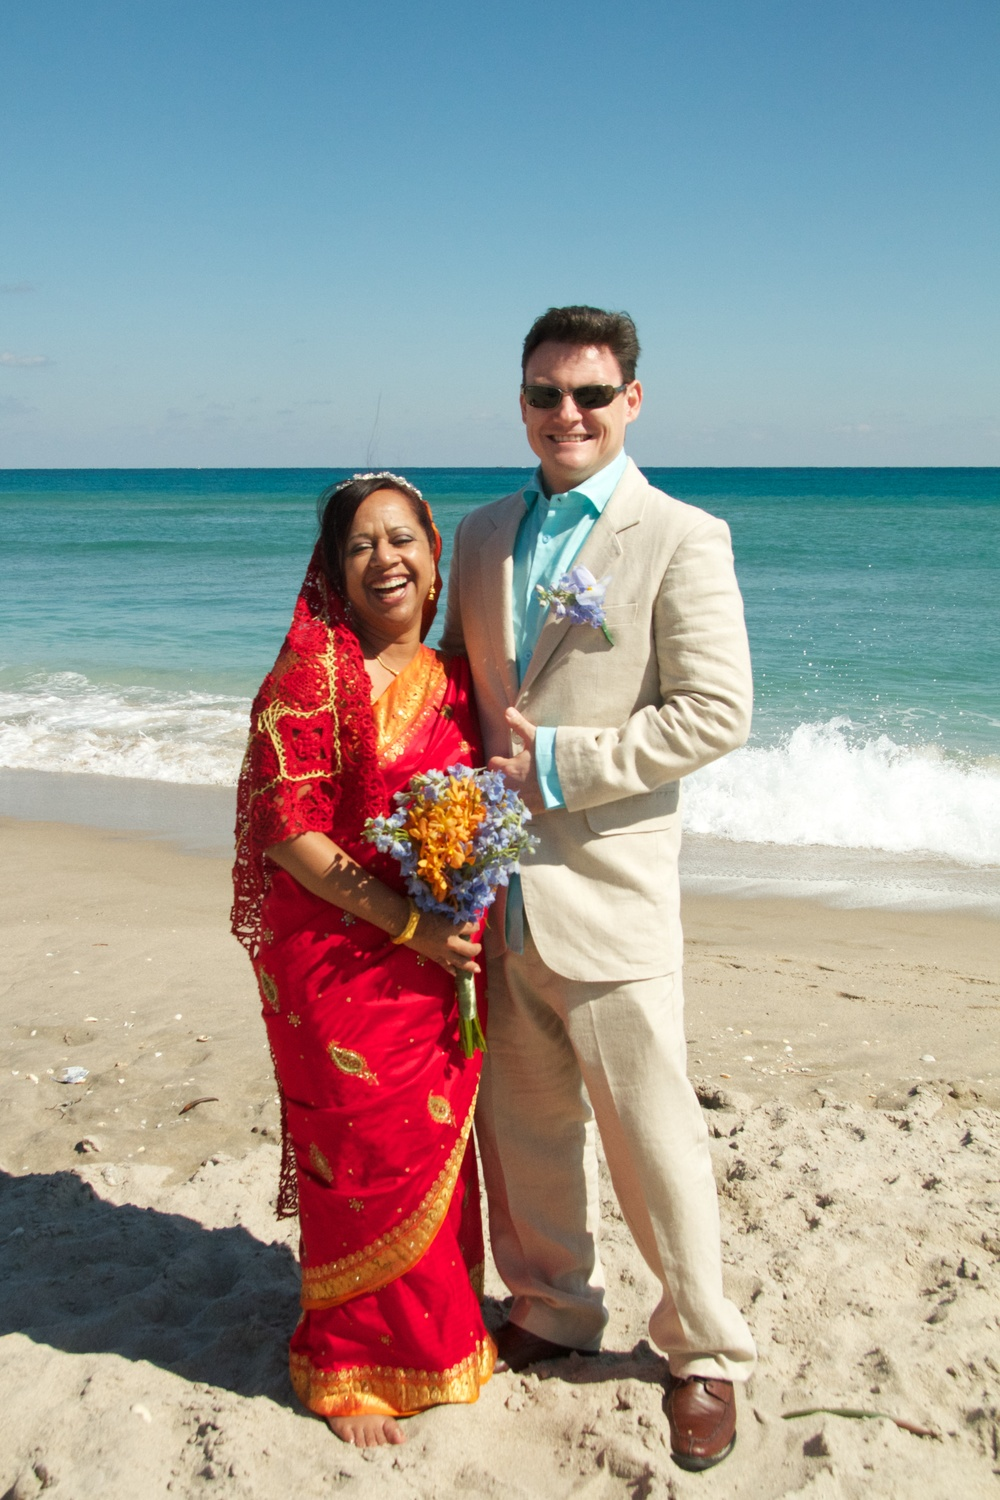 The newlyweds and their beach wedding.